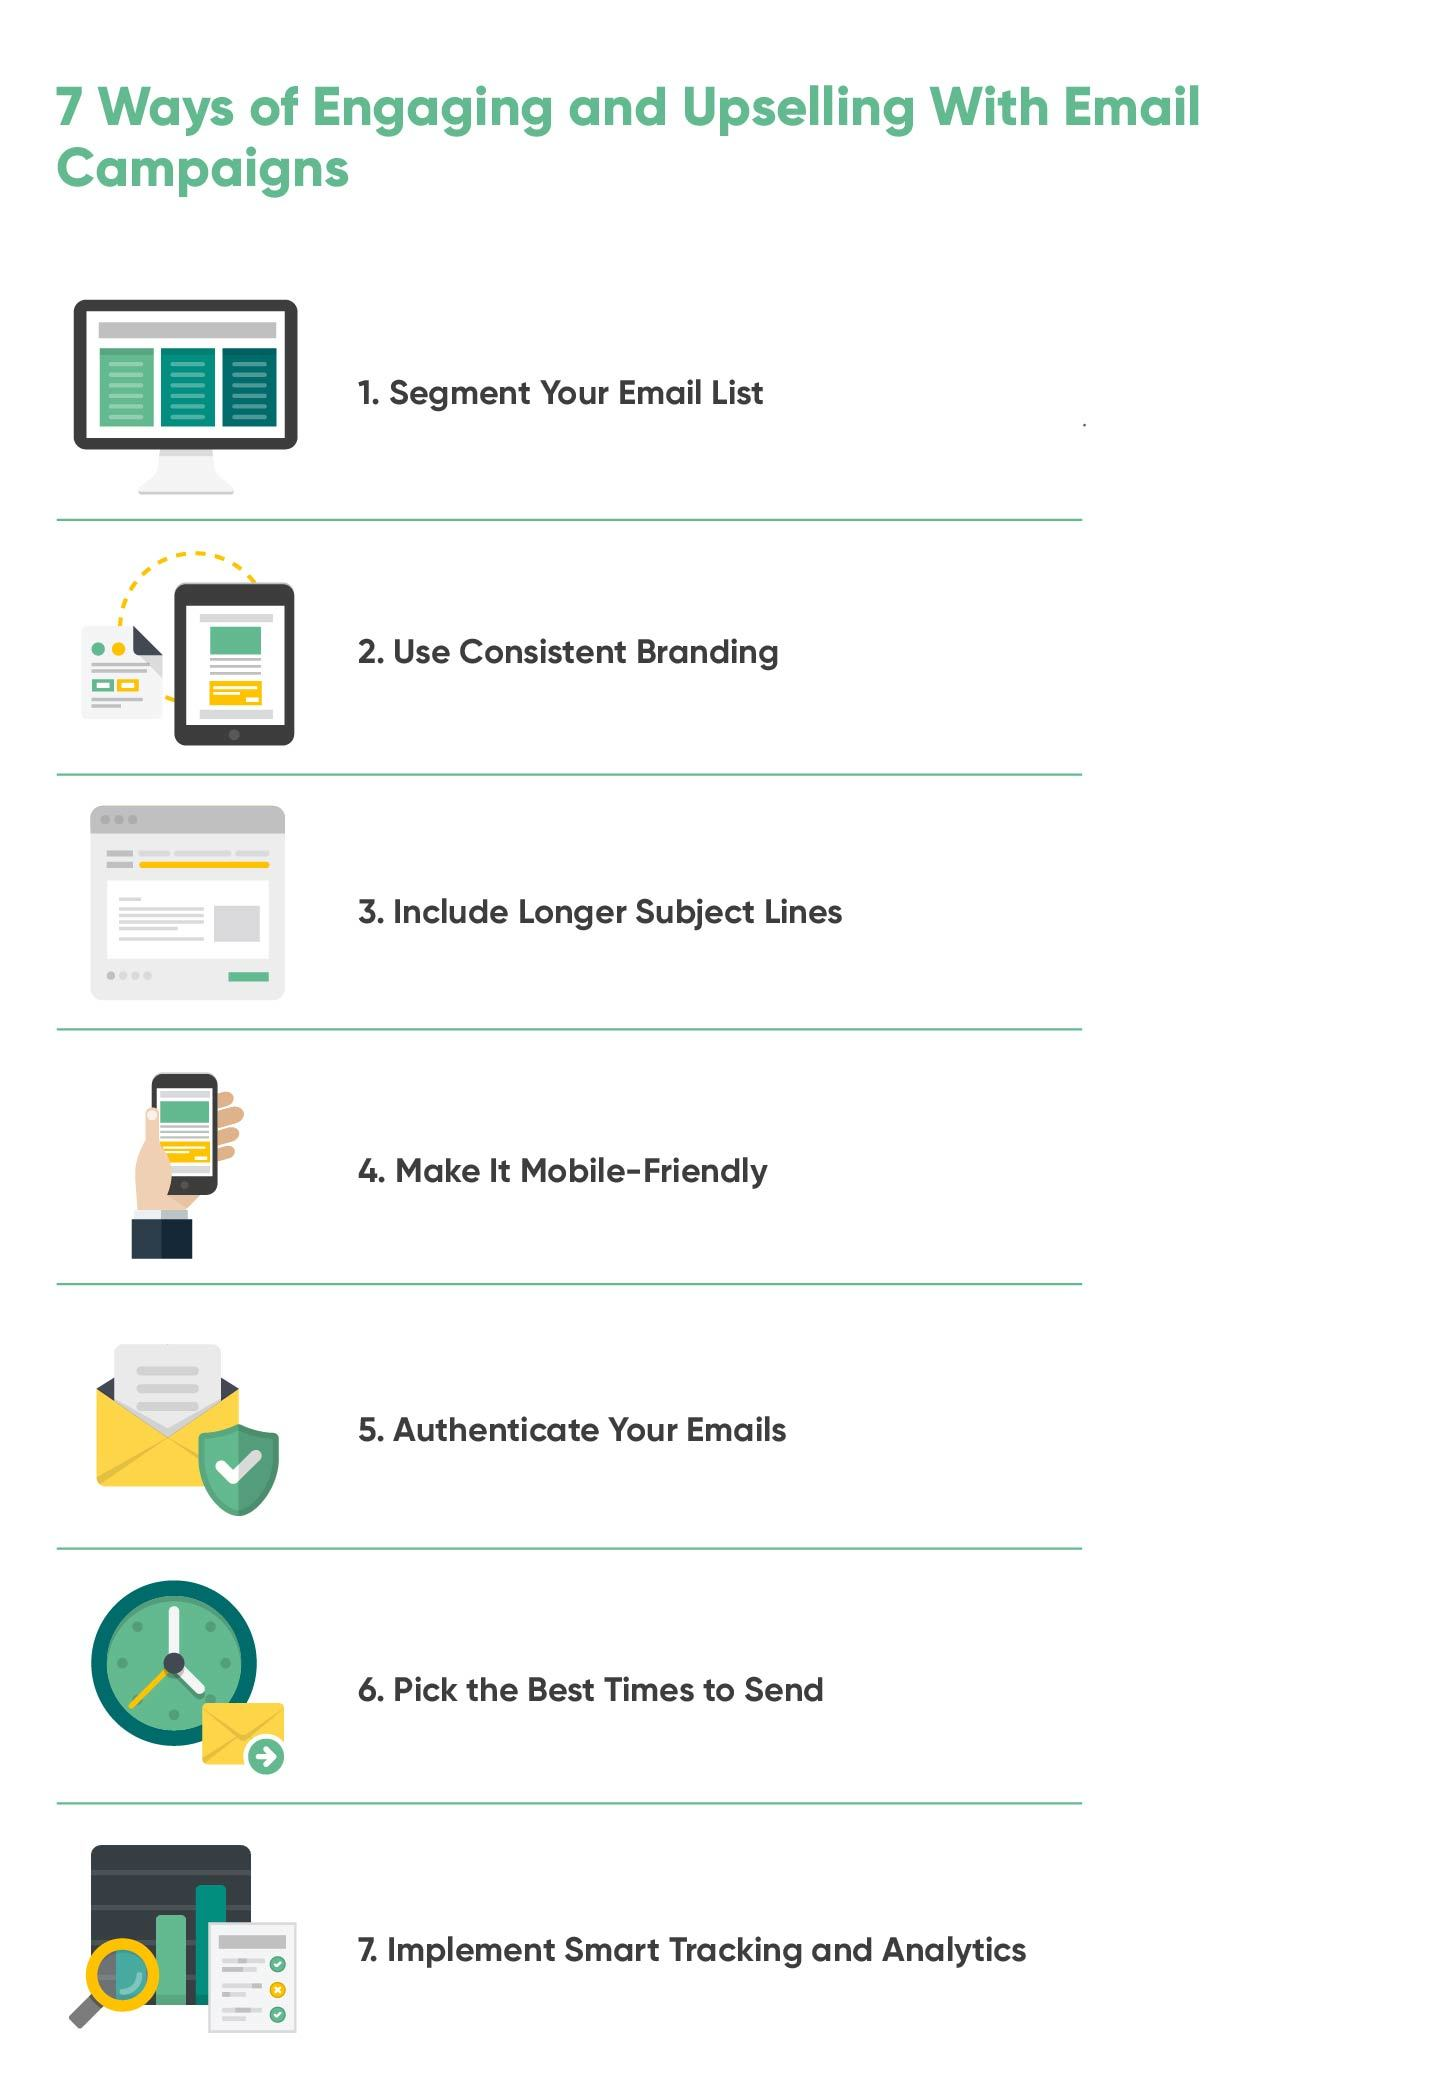 7-Ways-of-Engaging-and-Upselling-With-Email-Campaigns.jpg#asset:21528